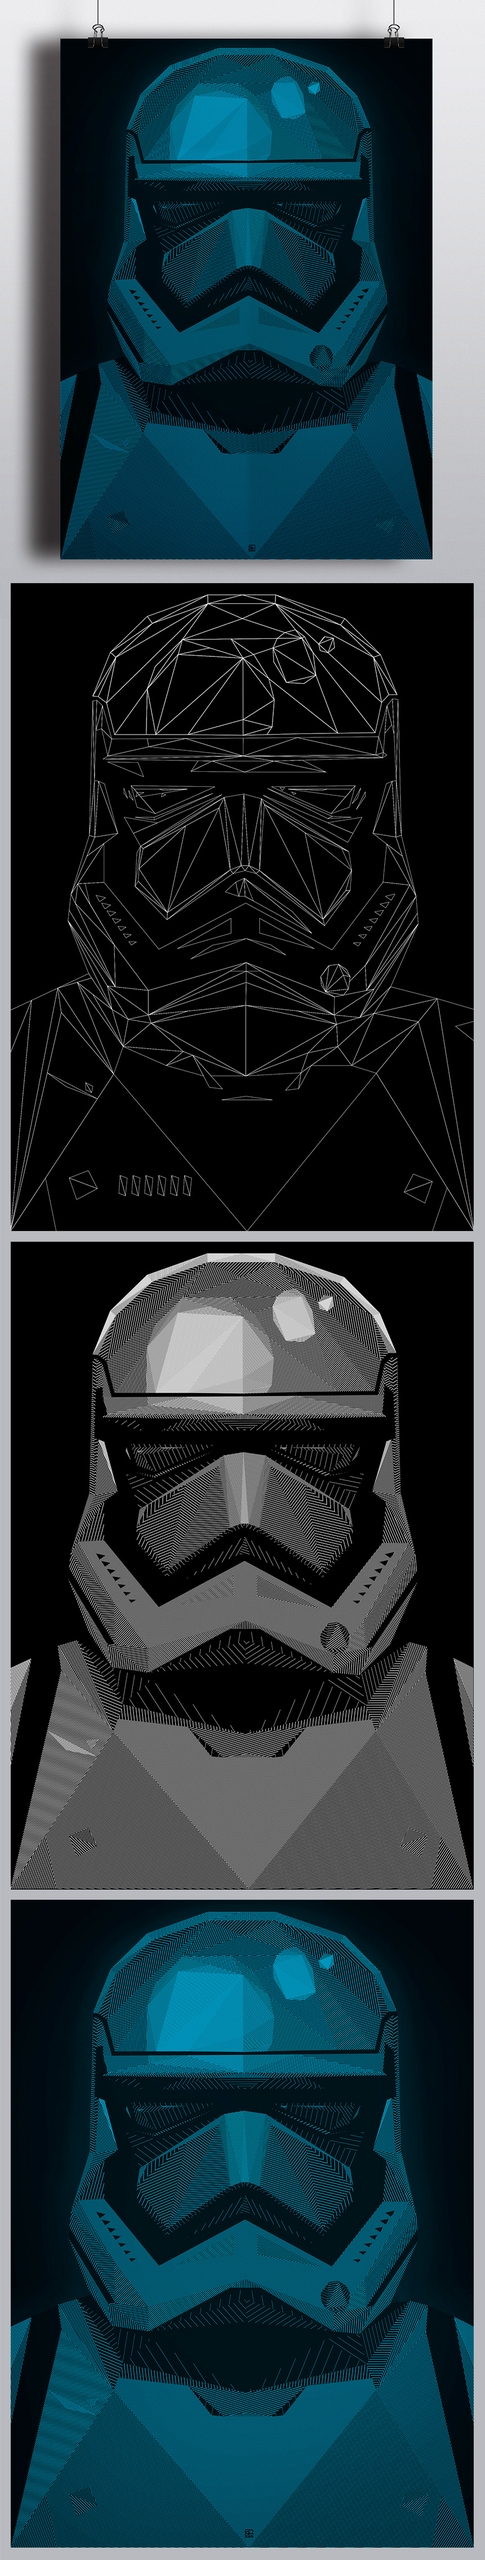 Star Wars Force Awakens corner - andreszen | ello